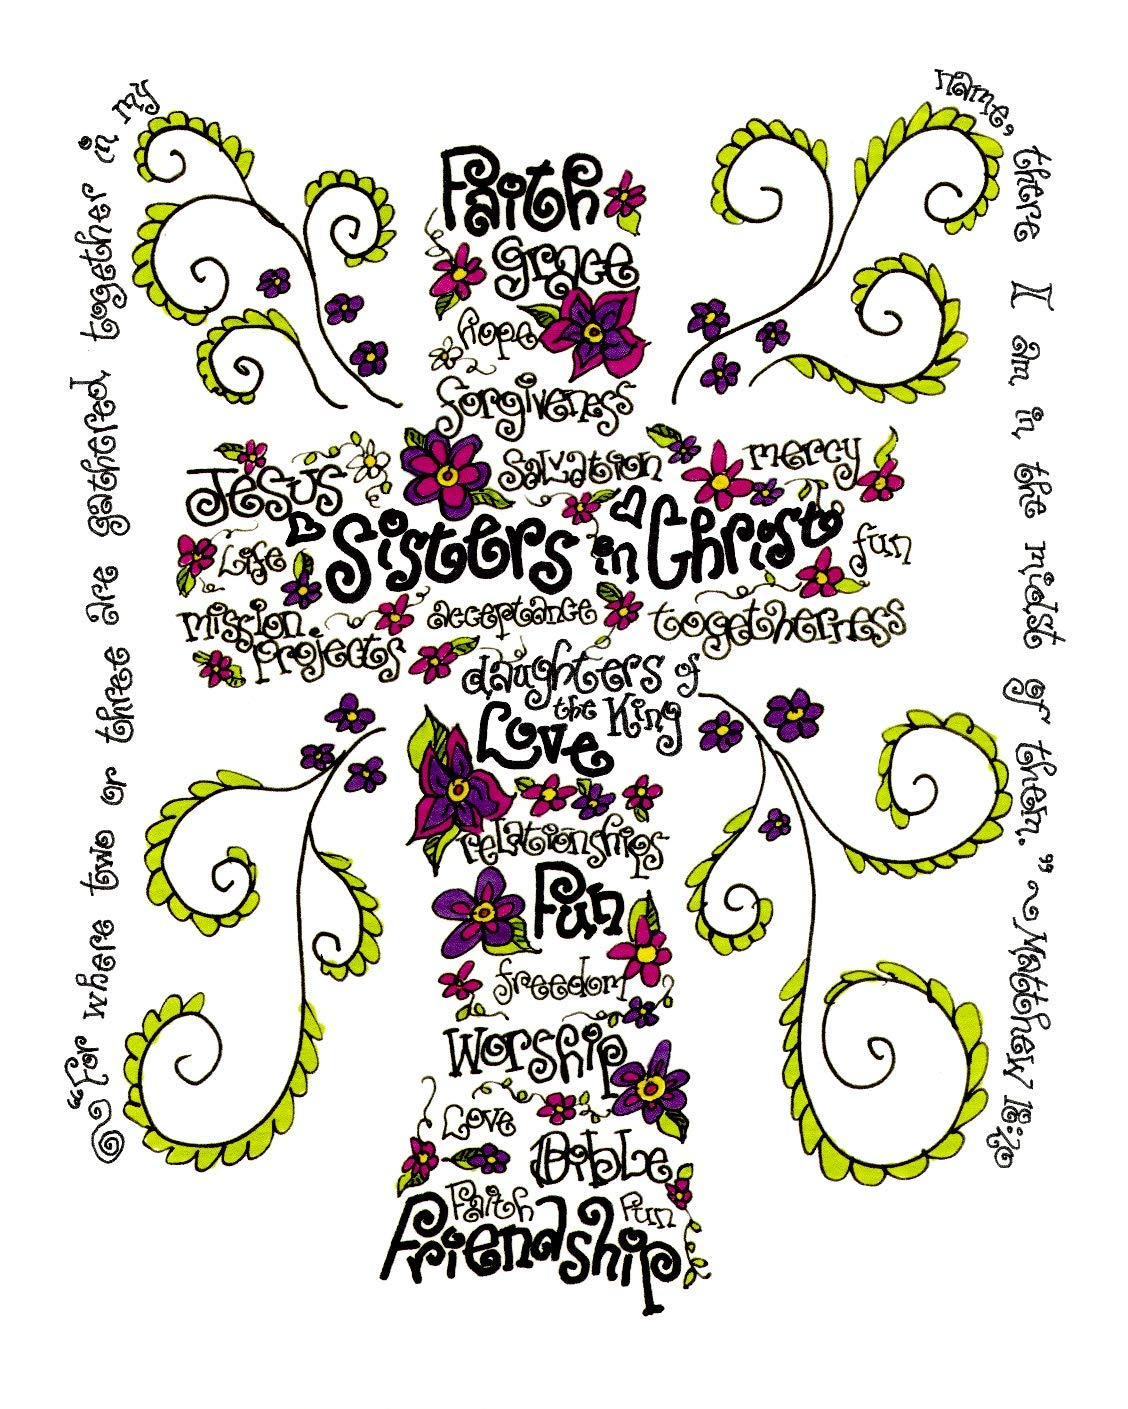 Dovetail Ink Sisters in Christ Cross - Christian Gift for Her Wordart - Signed Art Print (8x10 Inches)